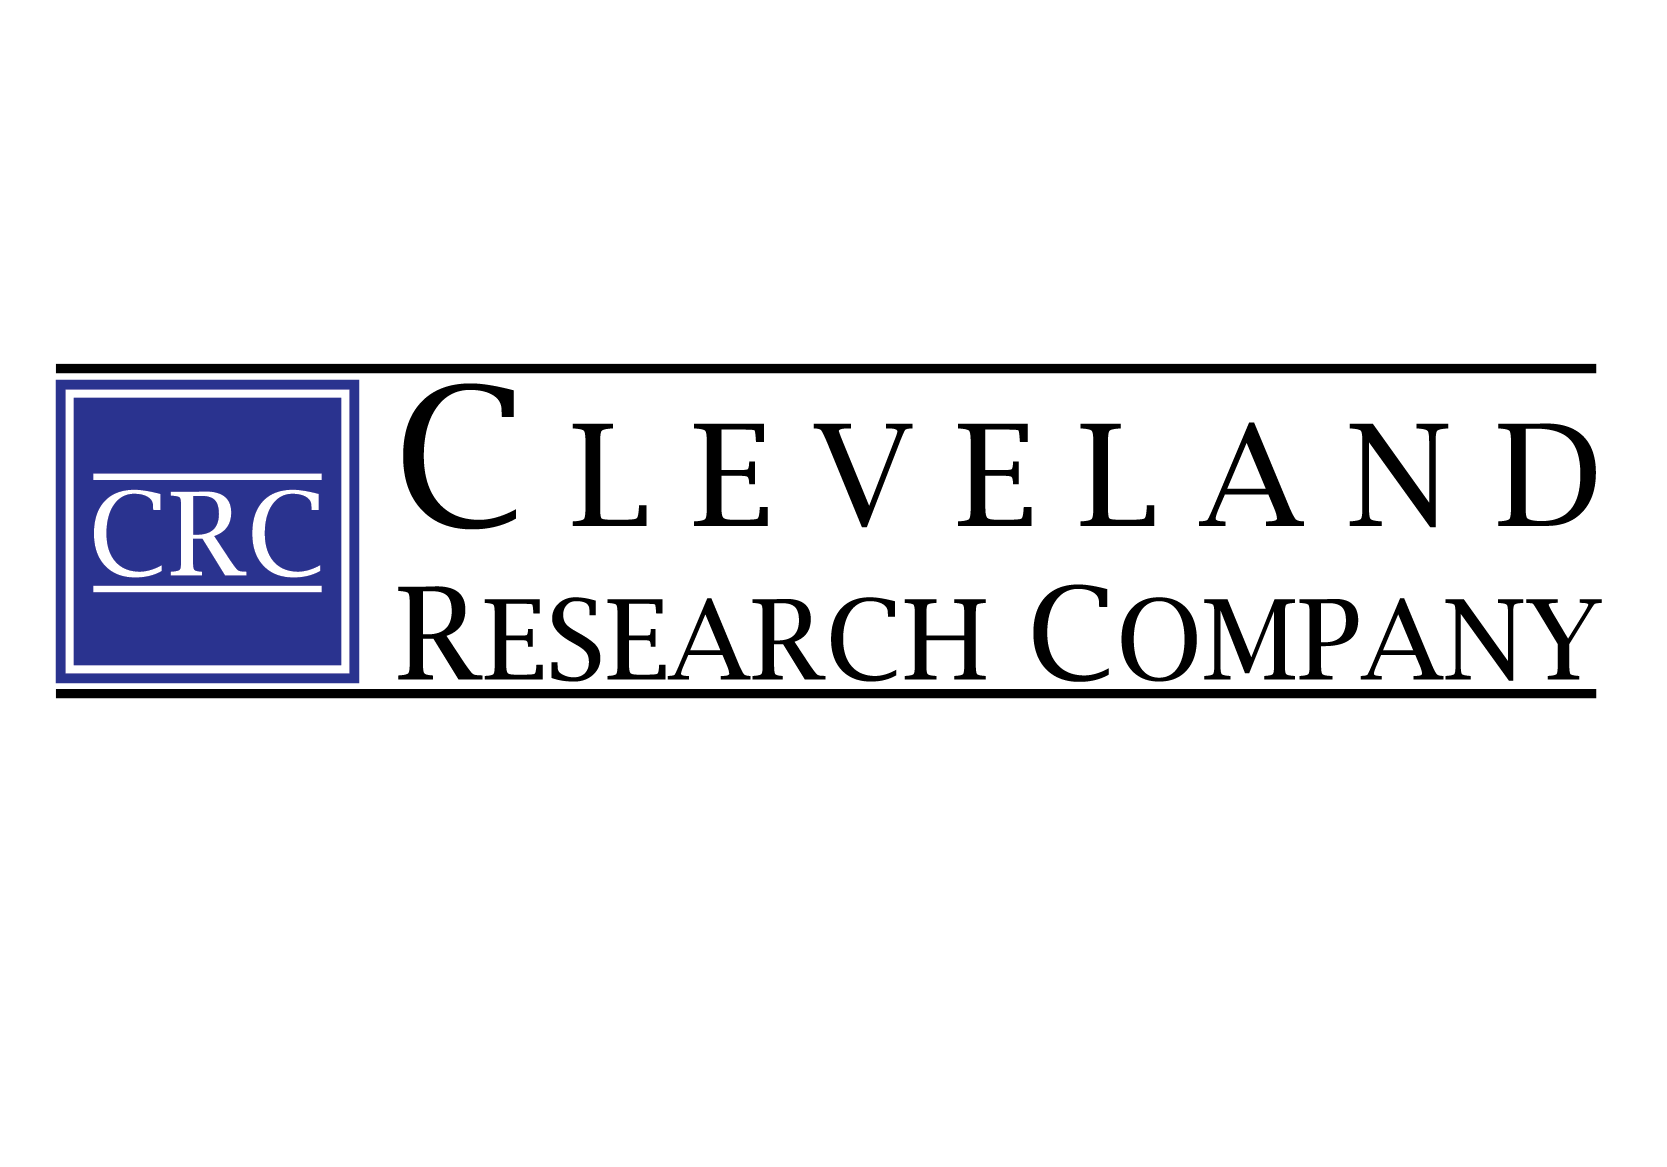 Cleveland Research Company